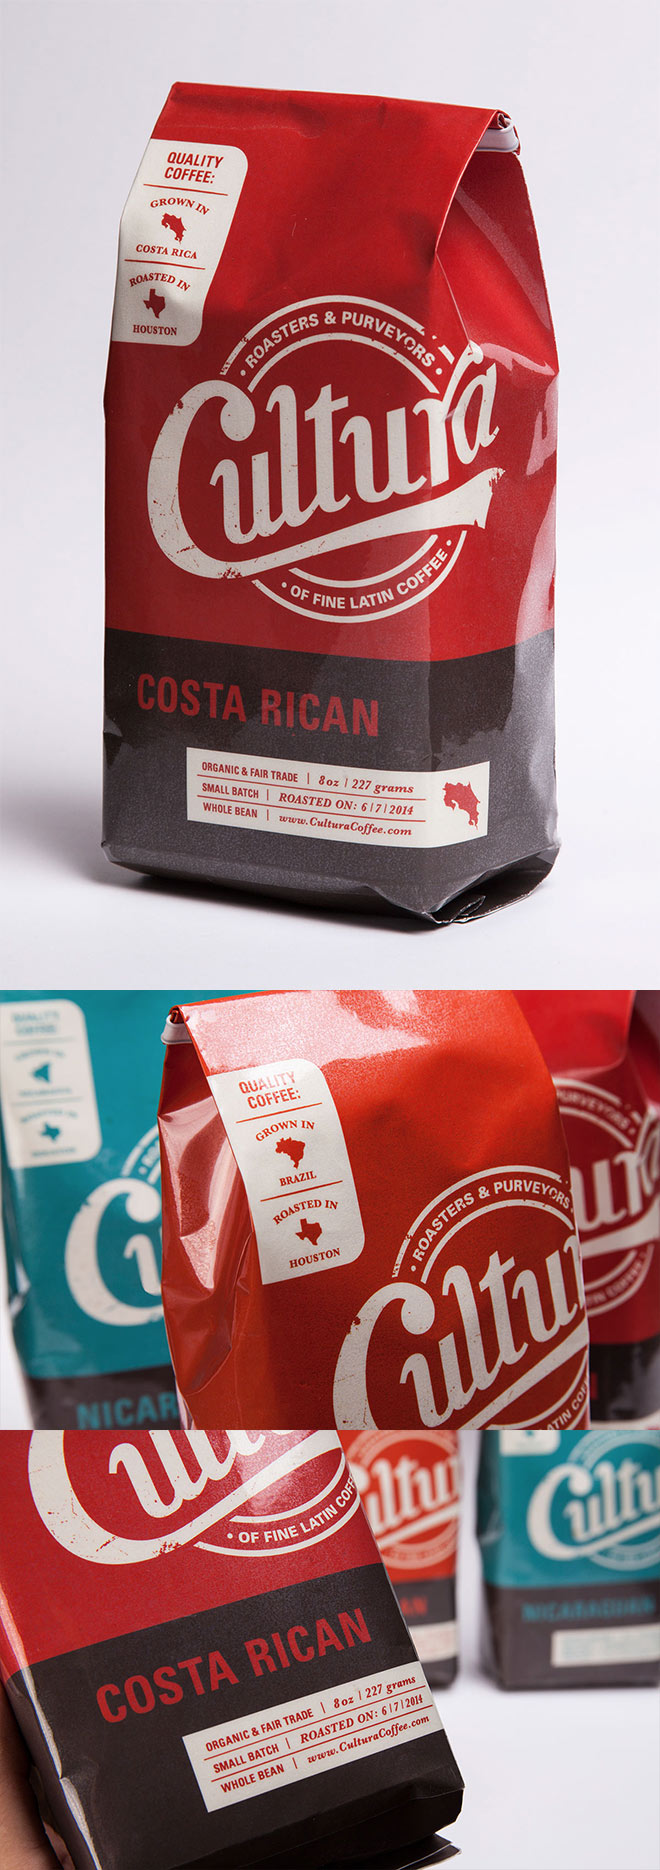 Cultura Coffee Roasters by Levi Huddleston